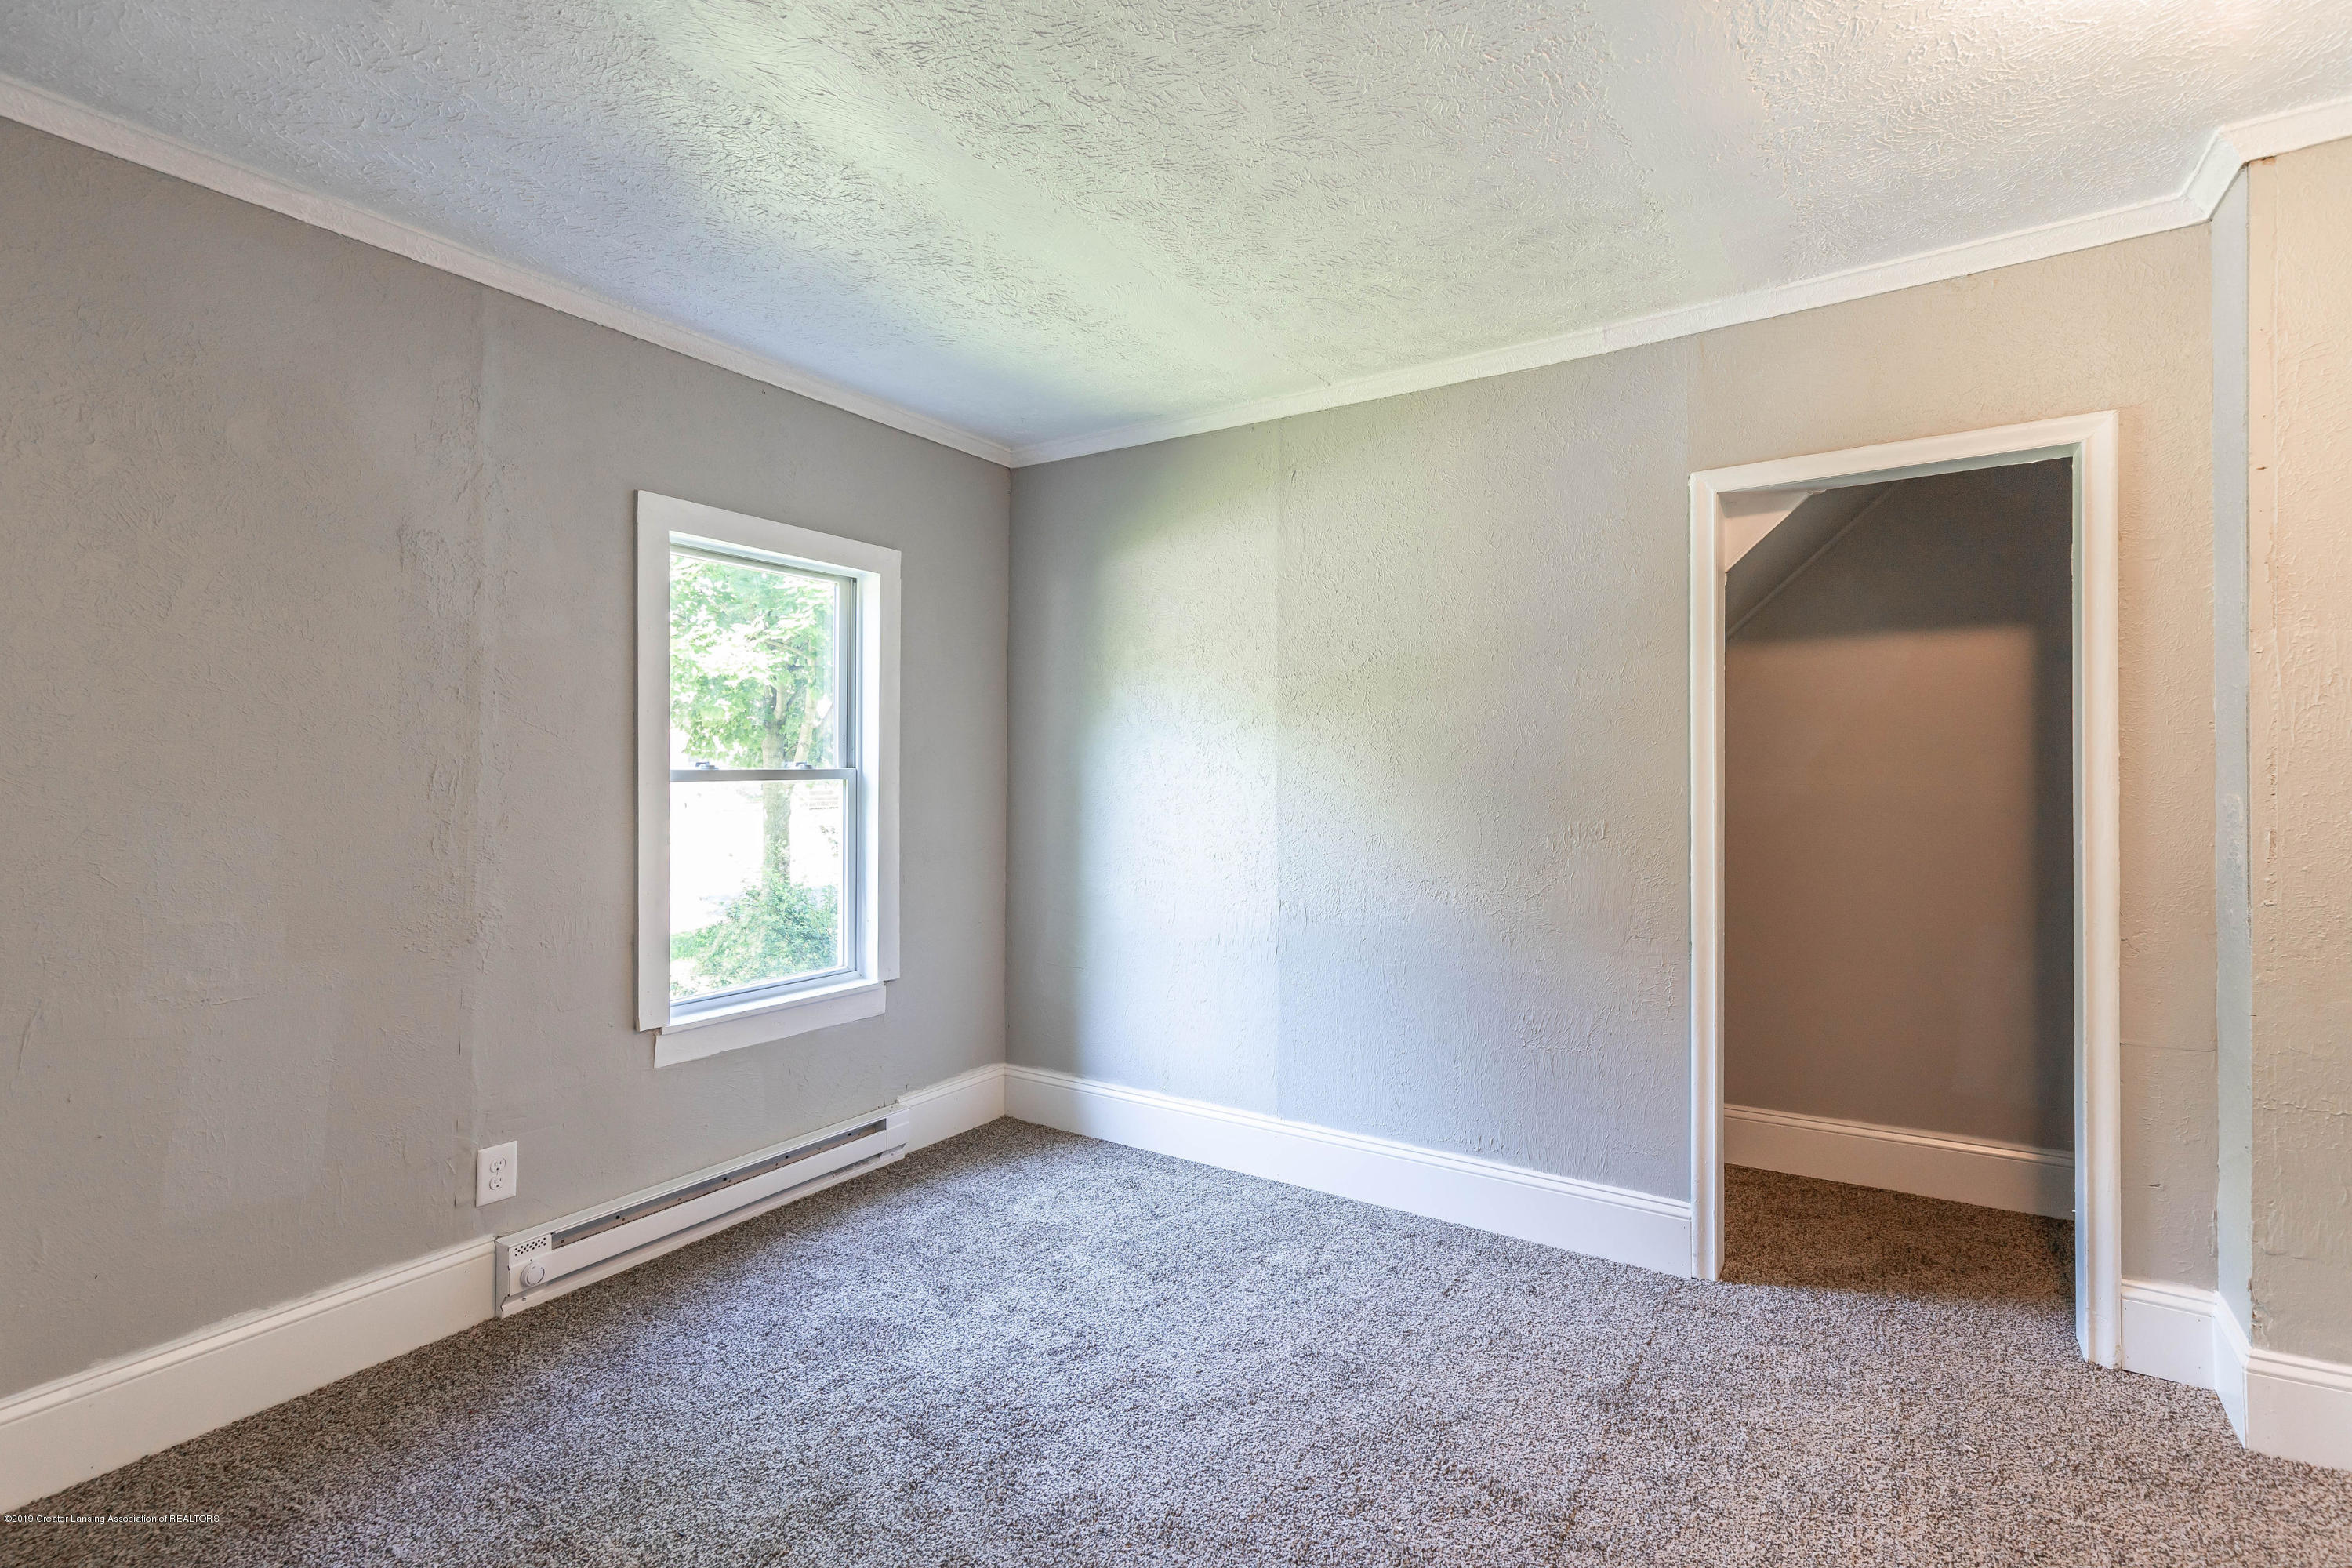 5338 Starr Ave - starrbed1(1of1) - 11